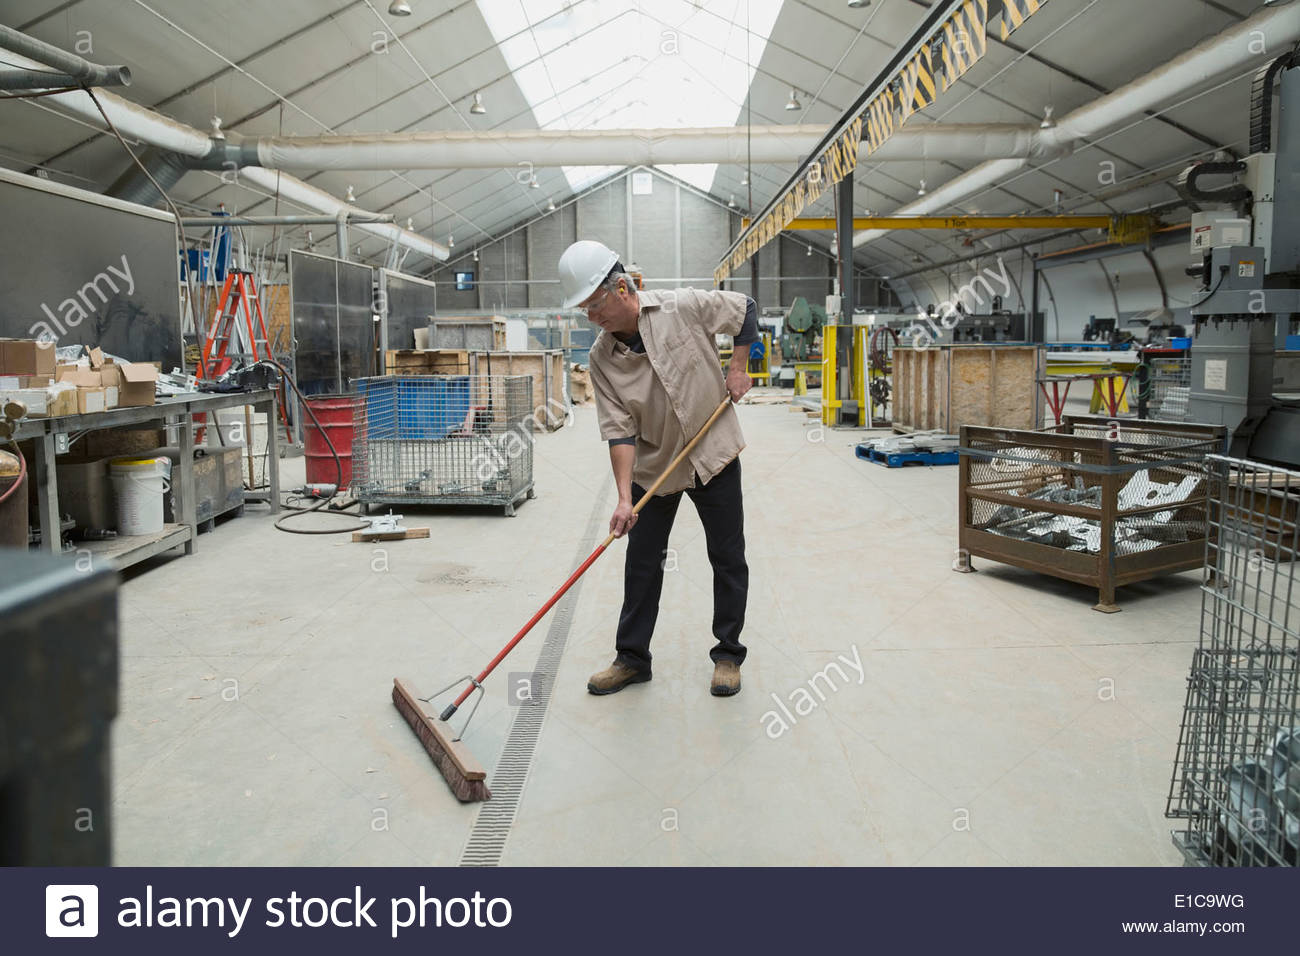 Worker sweeping in manufacturing plant - Stock Image